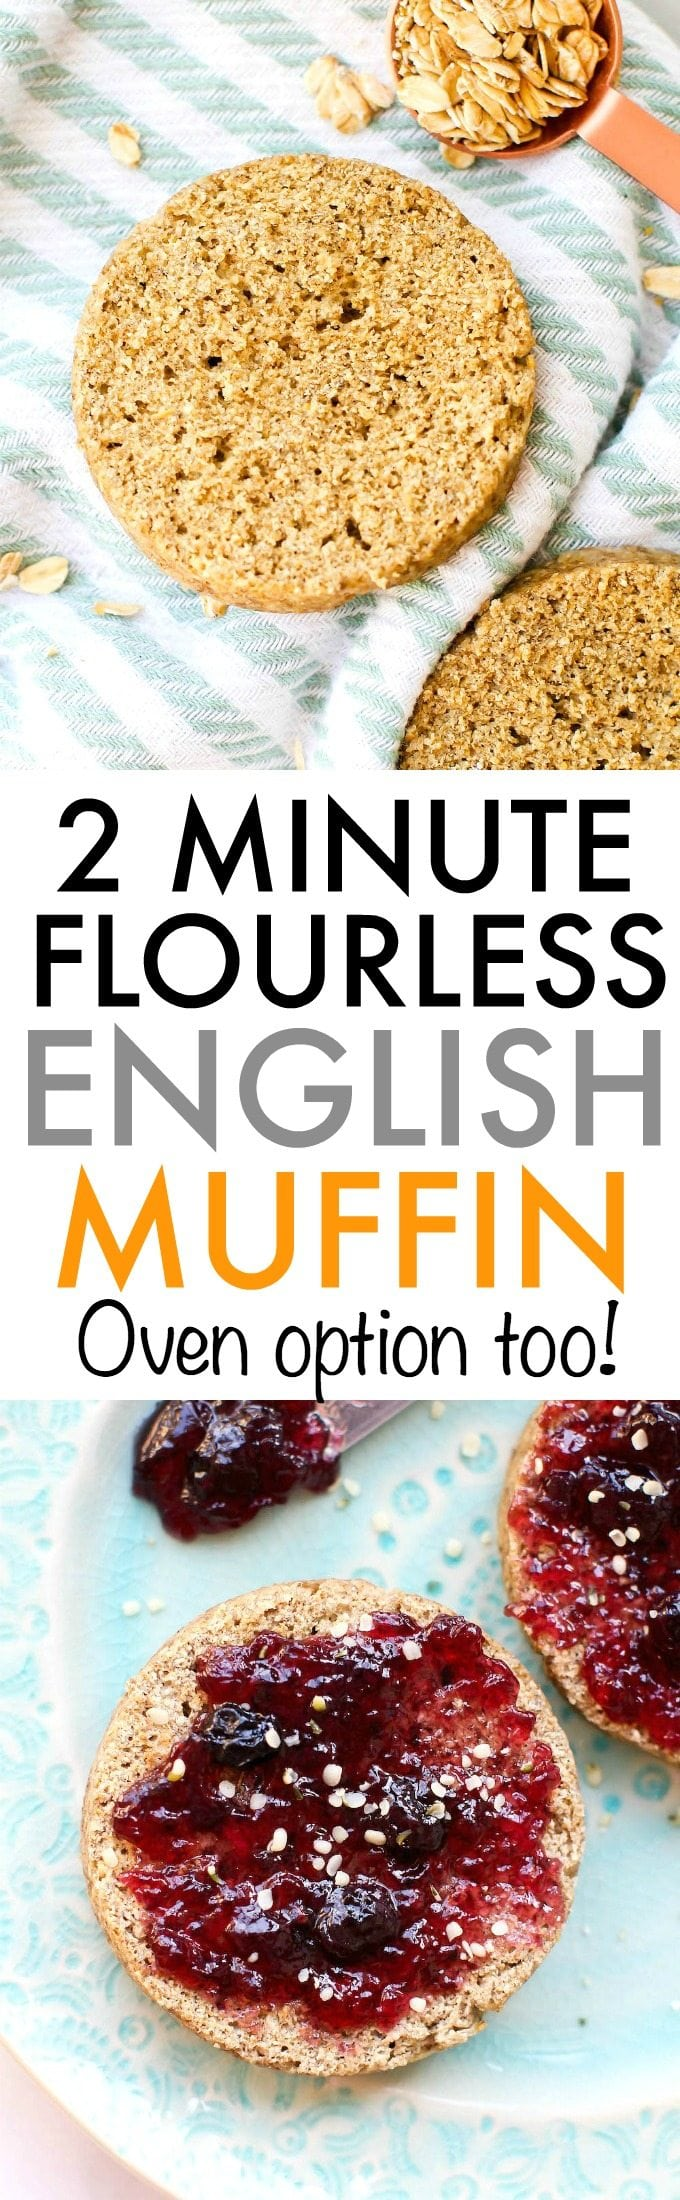 2 minute flourless english muffin forumfinder Images